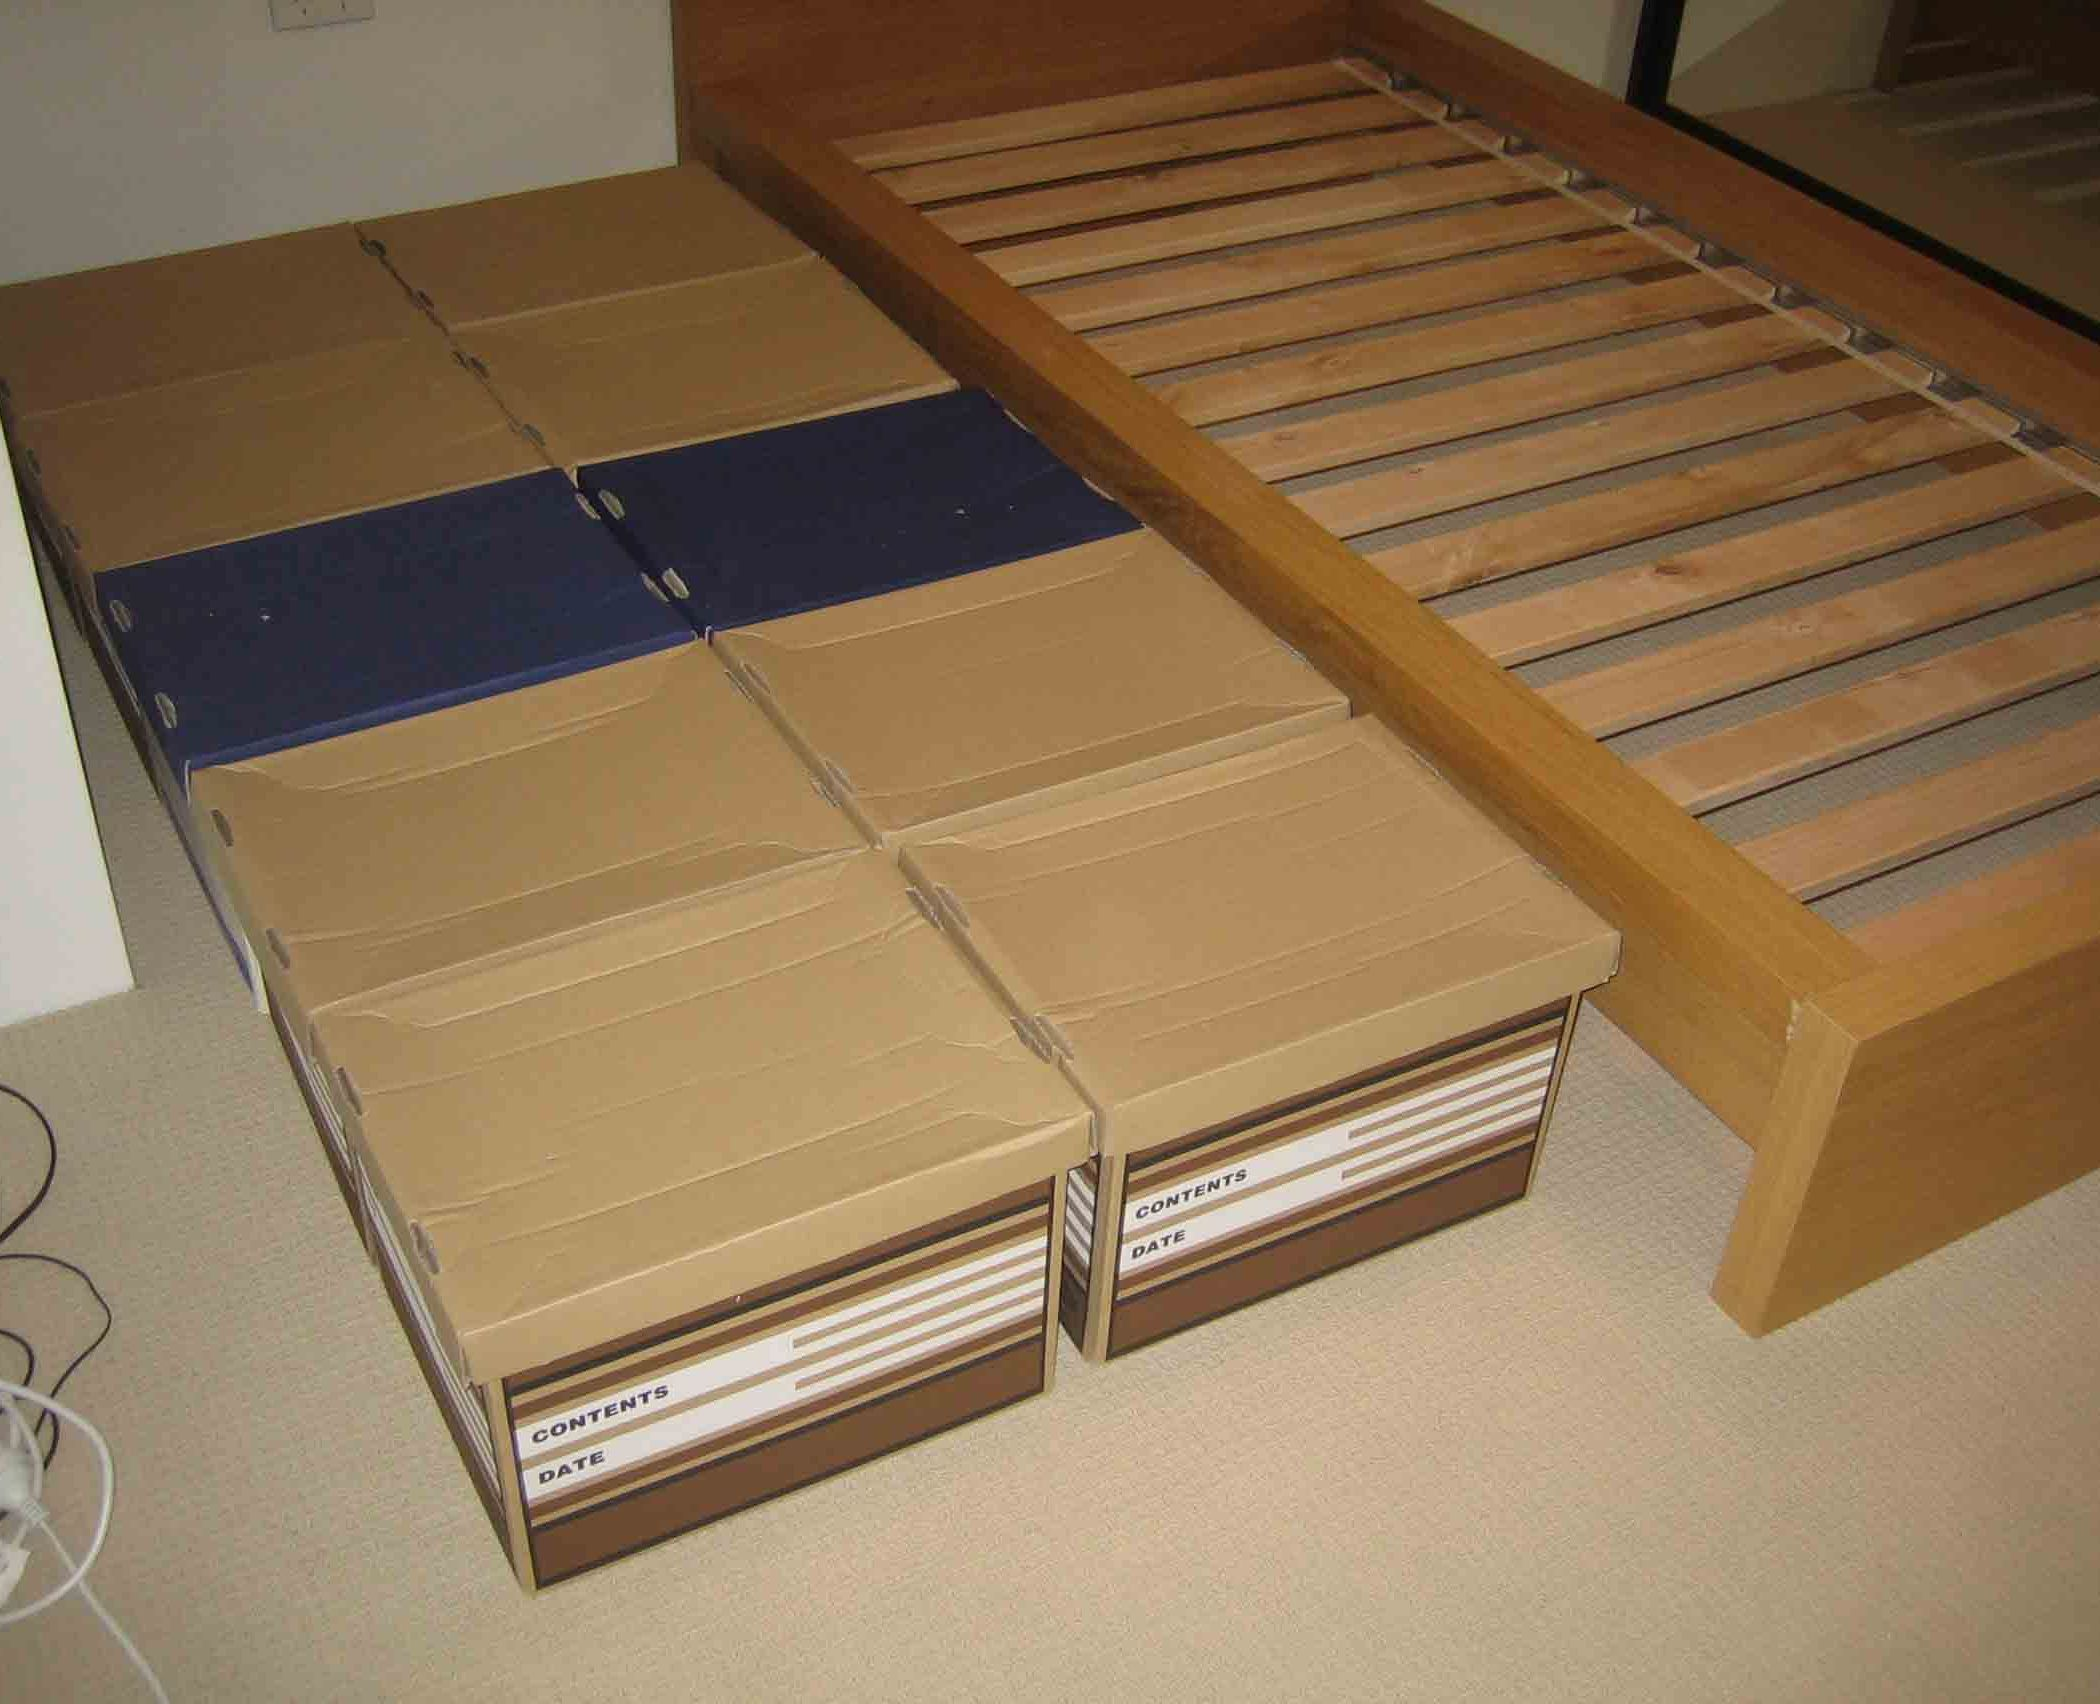 Cheap Bed Substitute Diy bed frame, Diy twin bed frame